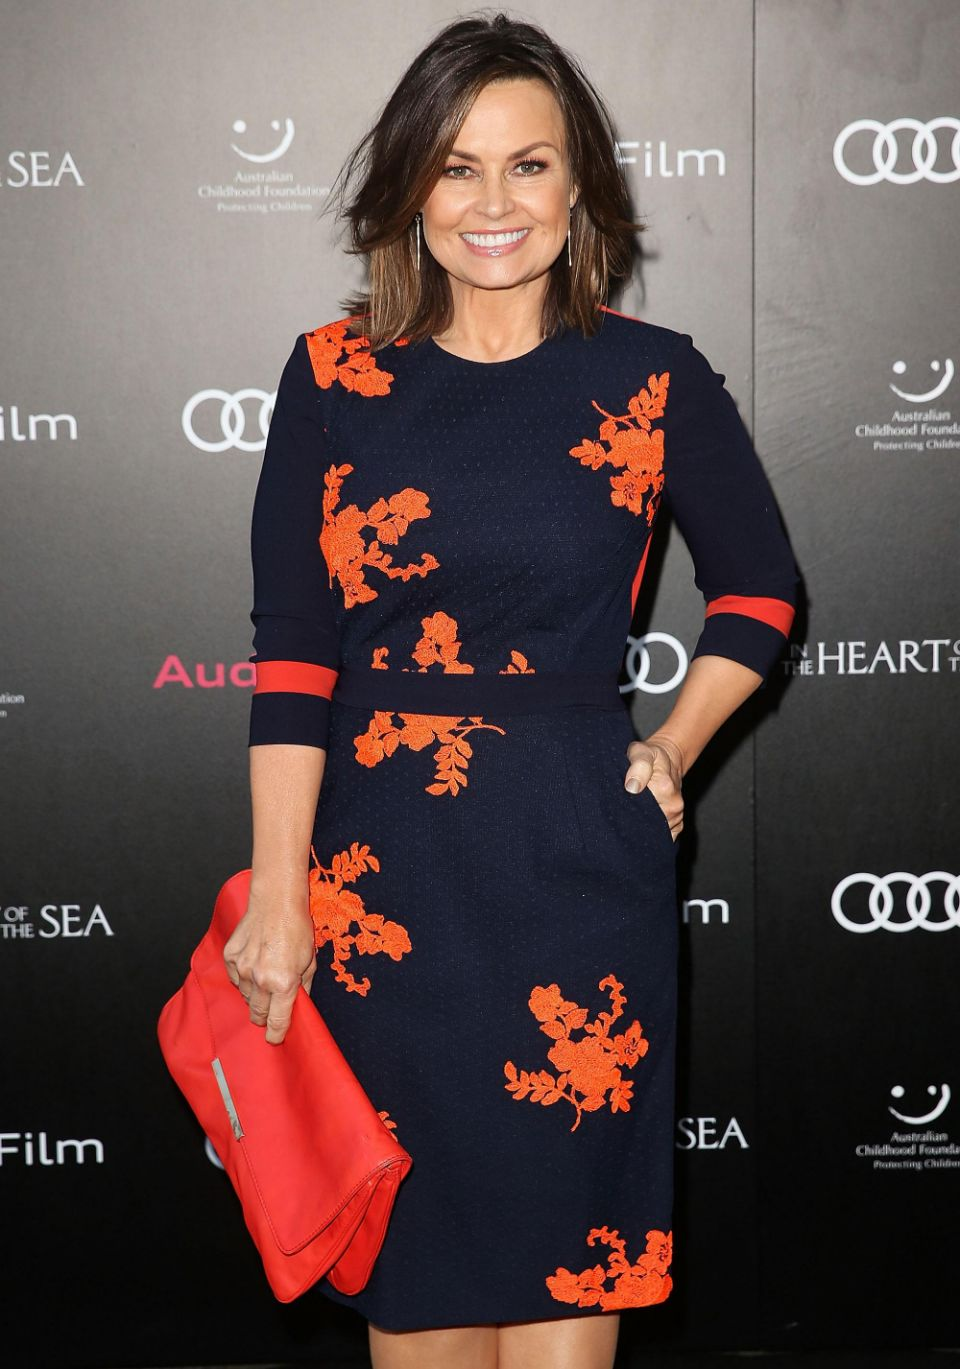 Lisa Wilkinson quit The Today Show on Monday Night. Source: Getty